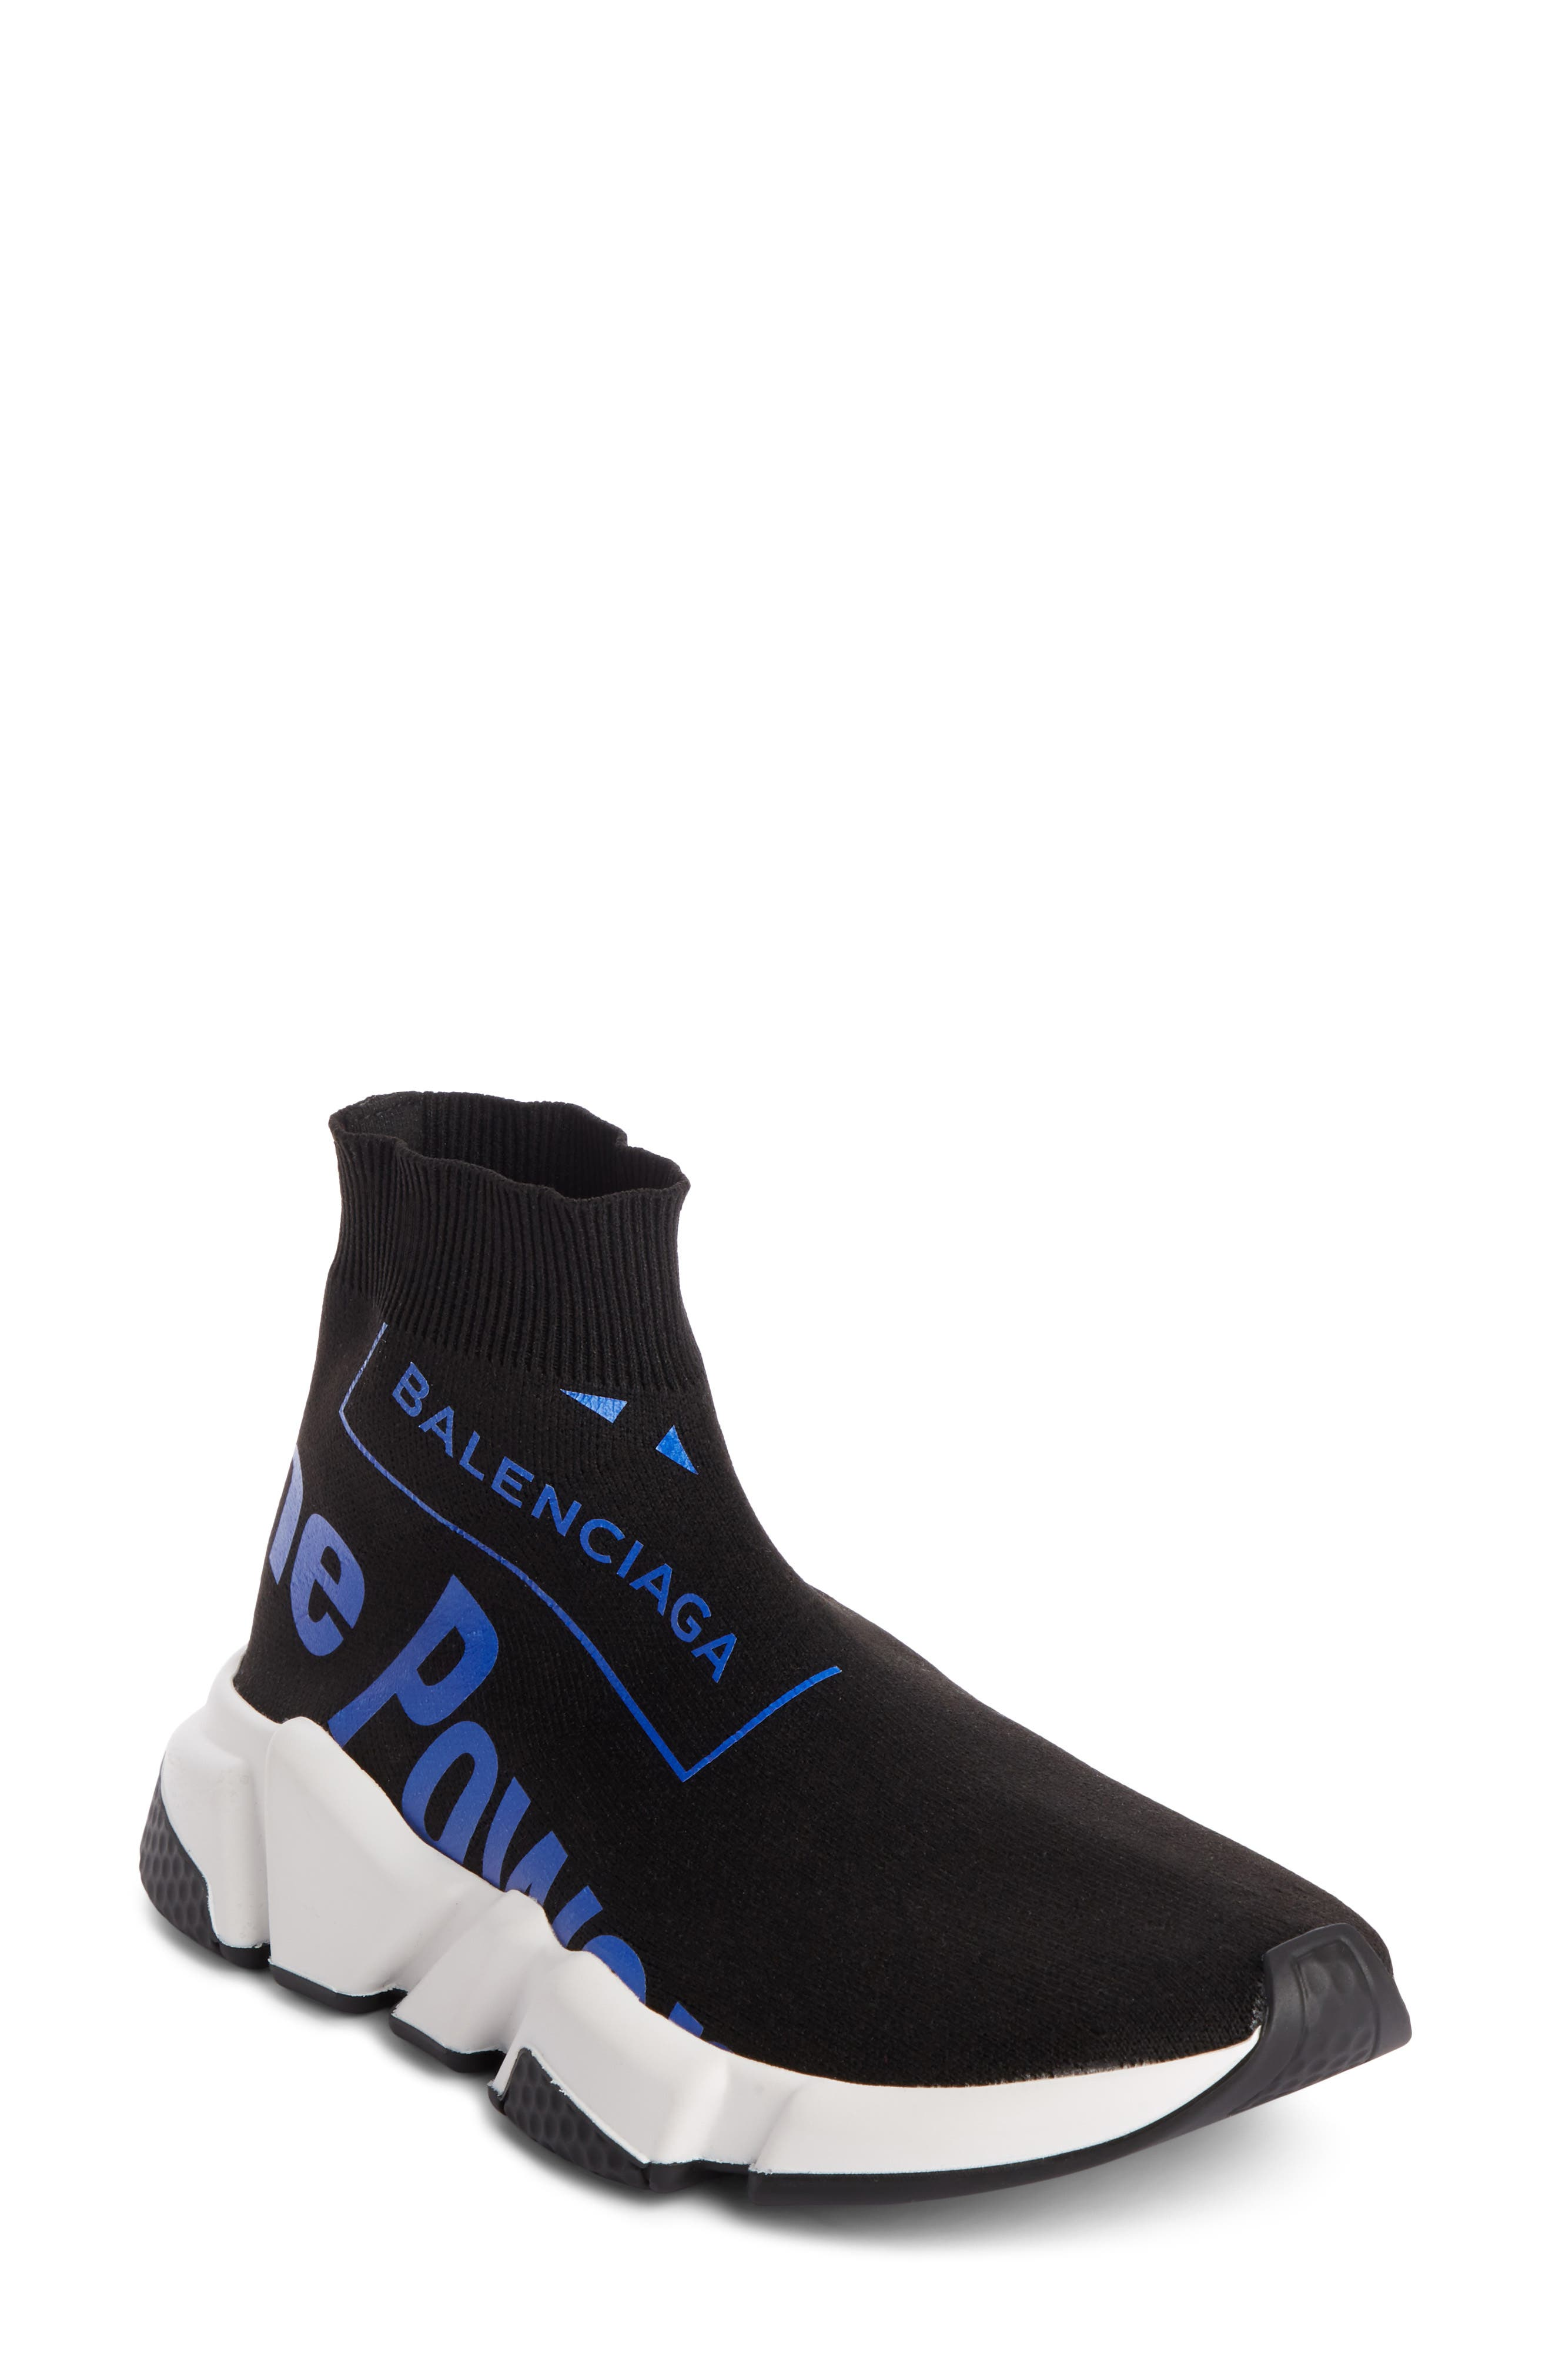 Dream Speed Trainer Sneaker,                             Main thumbnail 1, color,                             006